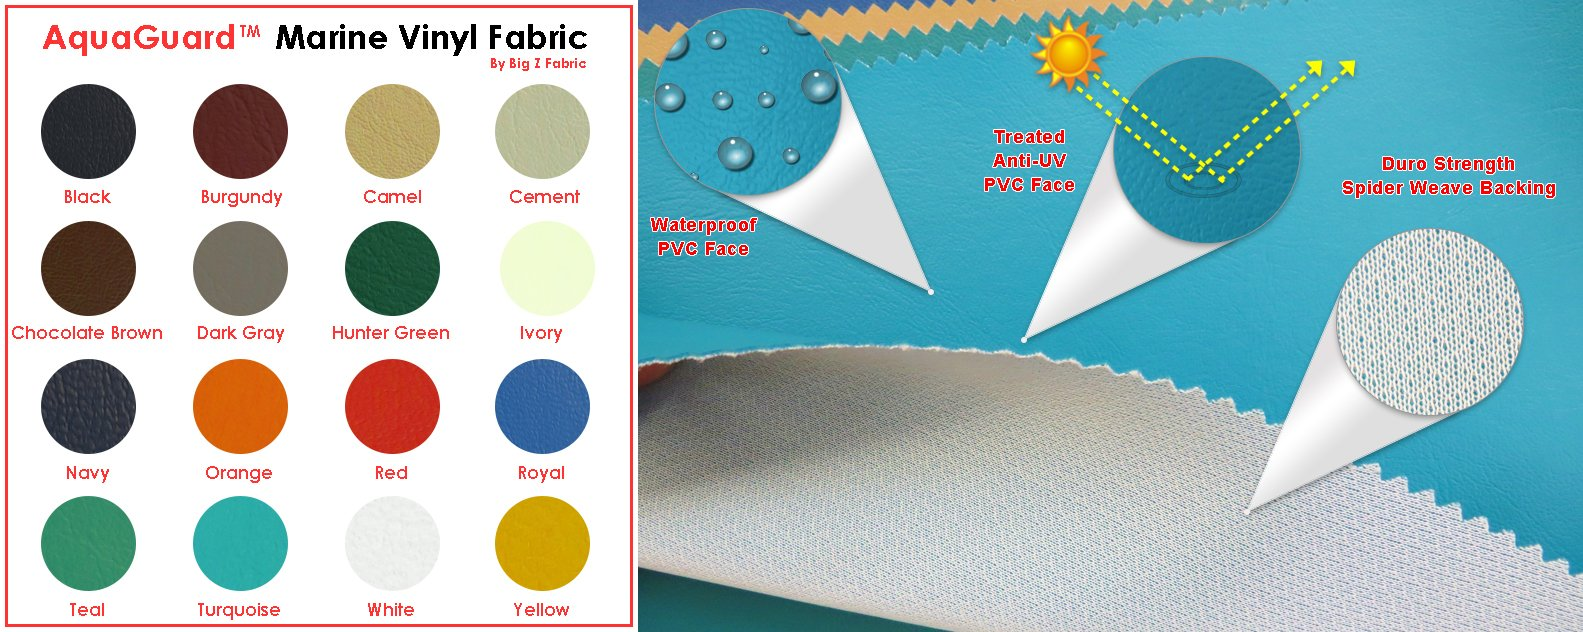 AquaGuard Marine Outdoor Vinyl Fabric 16 Colors 1-5-10-15-20-30 YDS Waterproof Anti-Fungal PVC Anti-UV Upholstery (5 Yards, Turquoise)